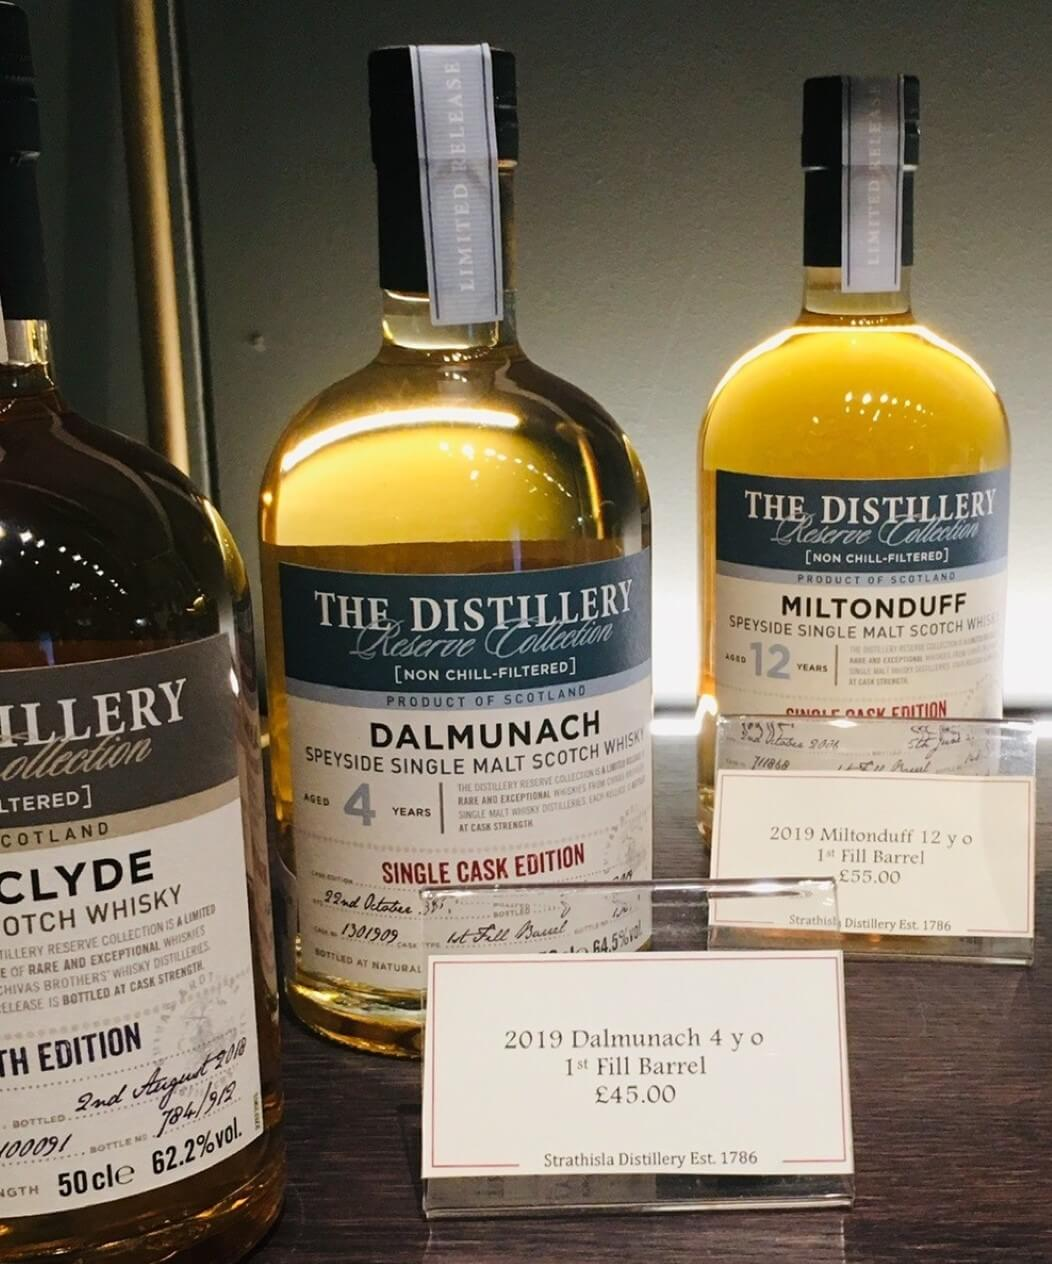 The Dalmunach release on sale at Strathisla Distillery Visitor Centre